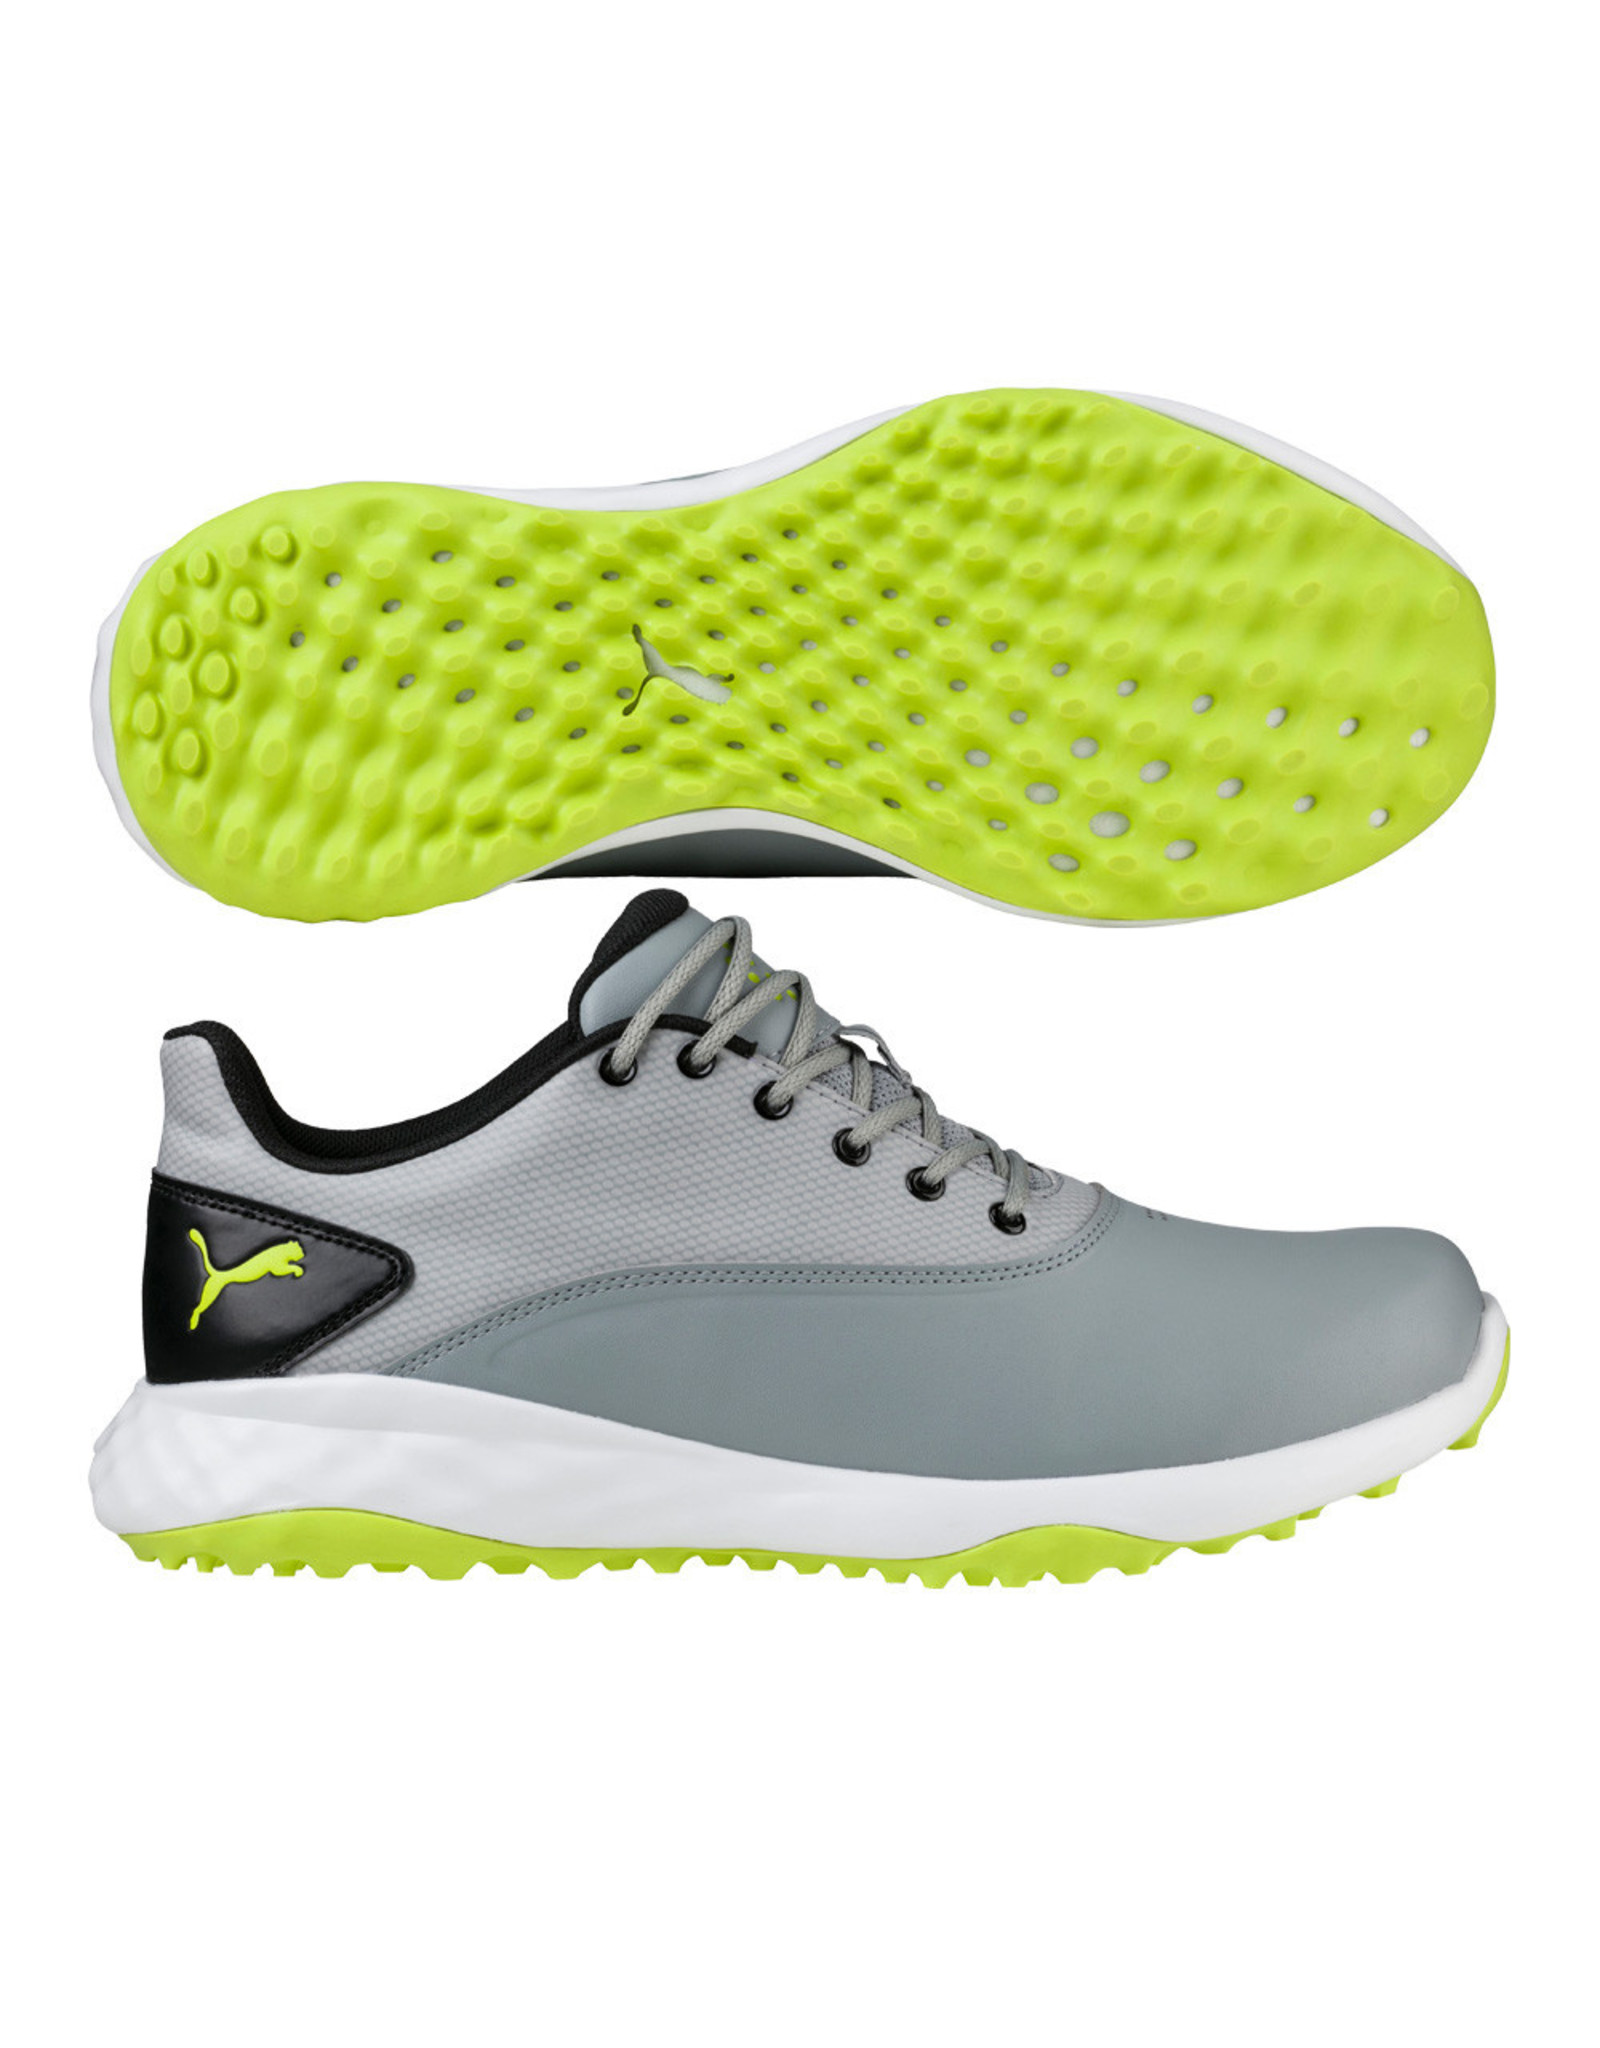 Puma Golf Puma Men's Grip Fusion Golf Shoes